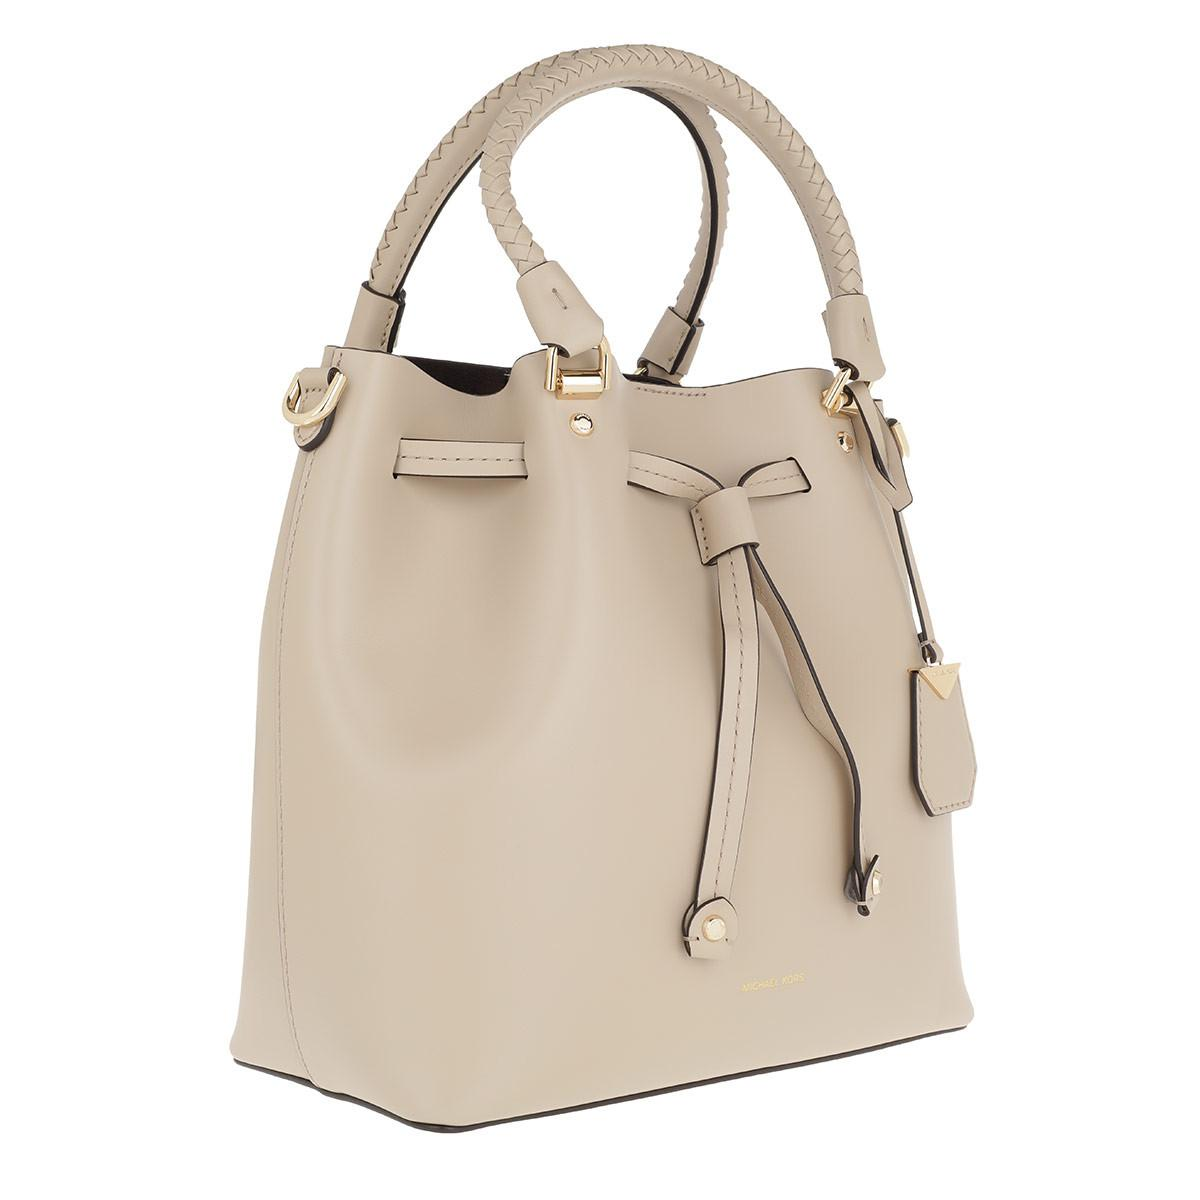 b1e6a4a502f9 Michael Kors Blakely Md Bucket Bag Oat in Natural - Lyst